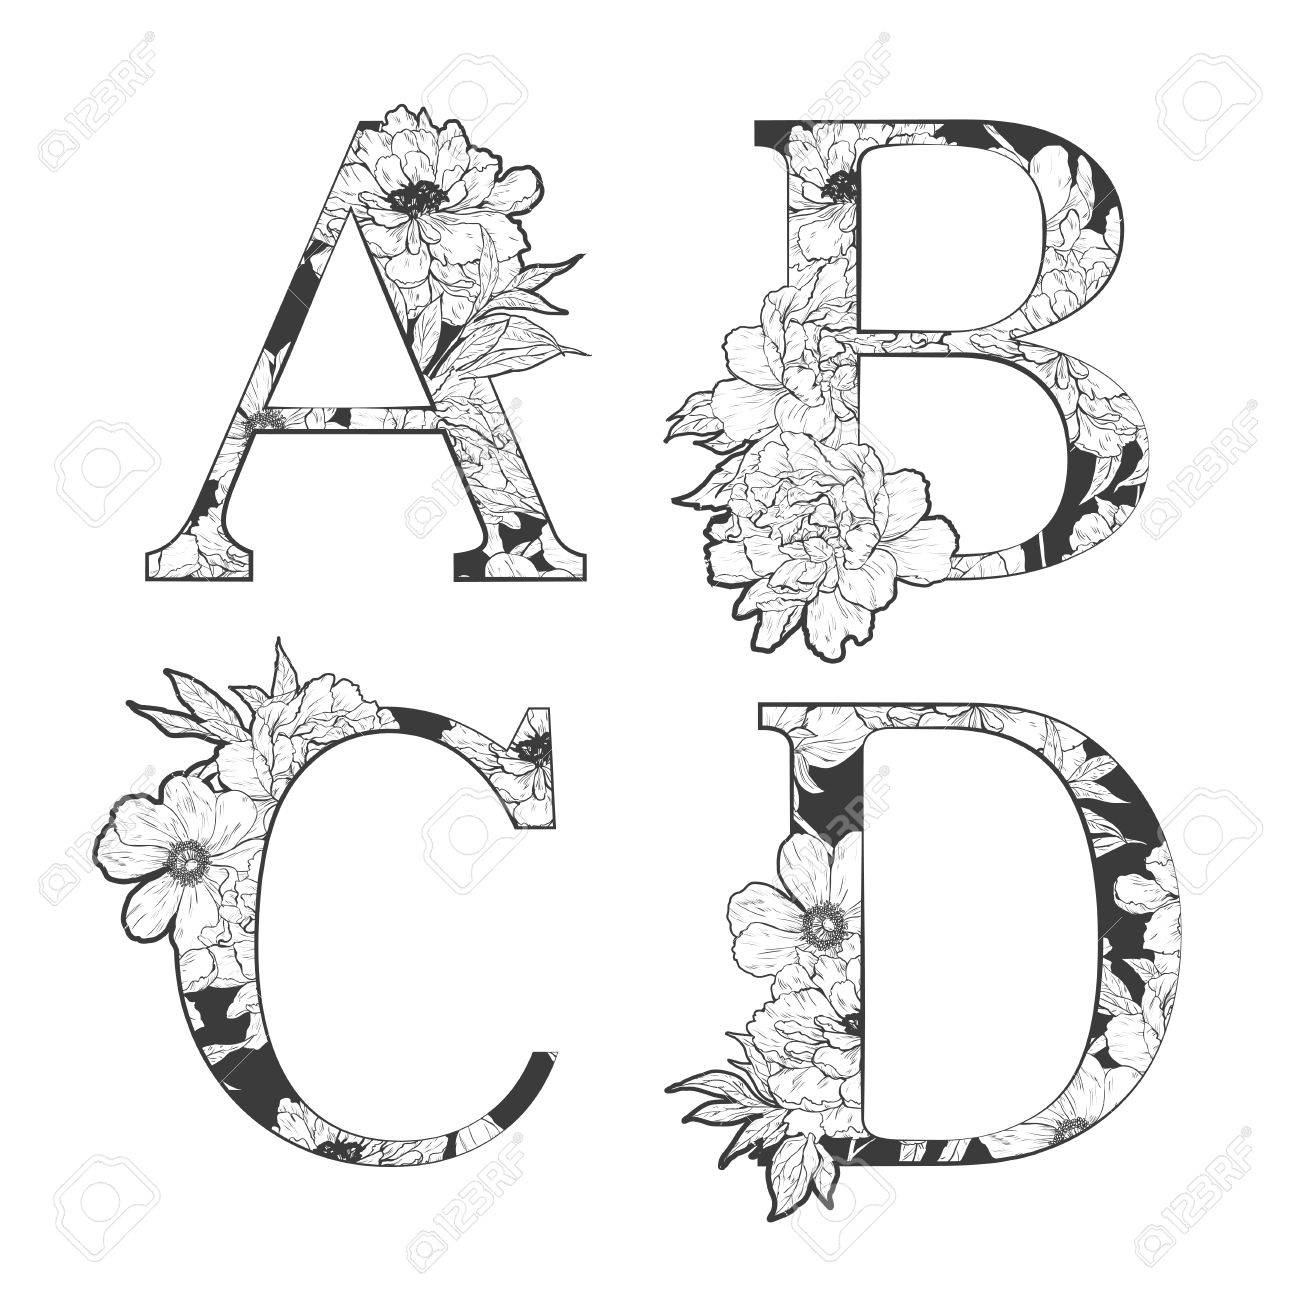 flower alphabet. Tattoo art, coloring books. Isolated on white background. Check my portfolio for other letters. - 52783001